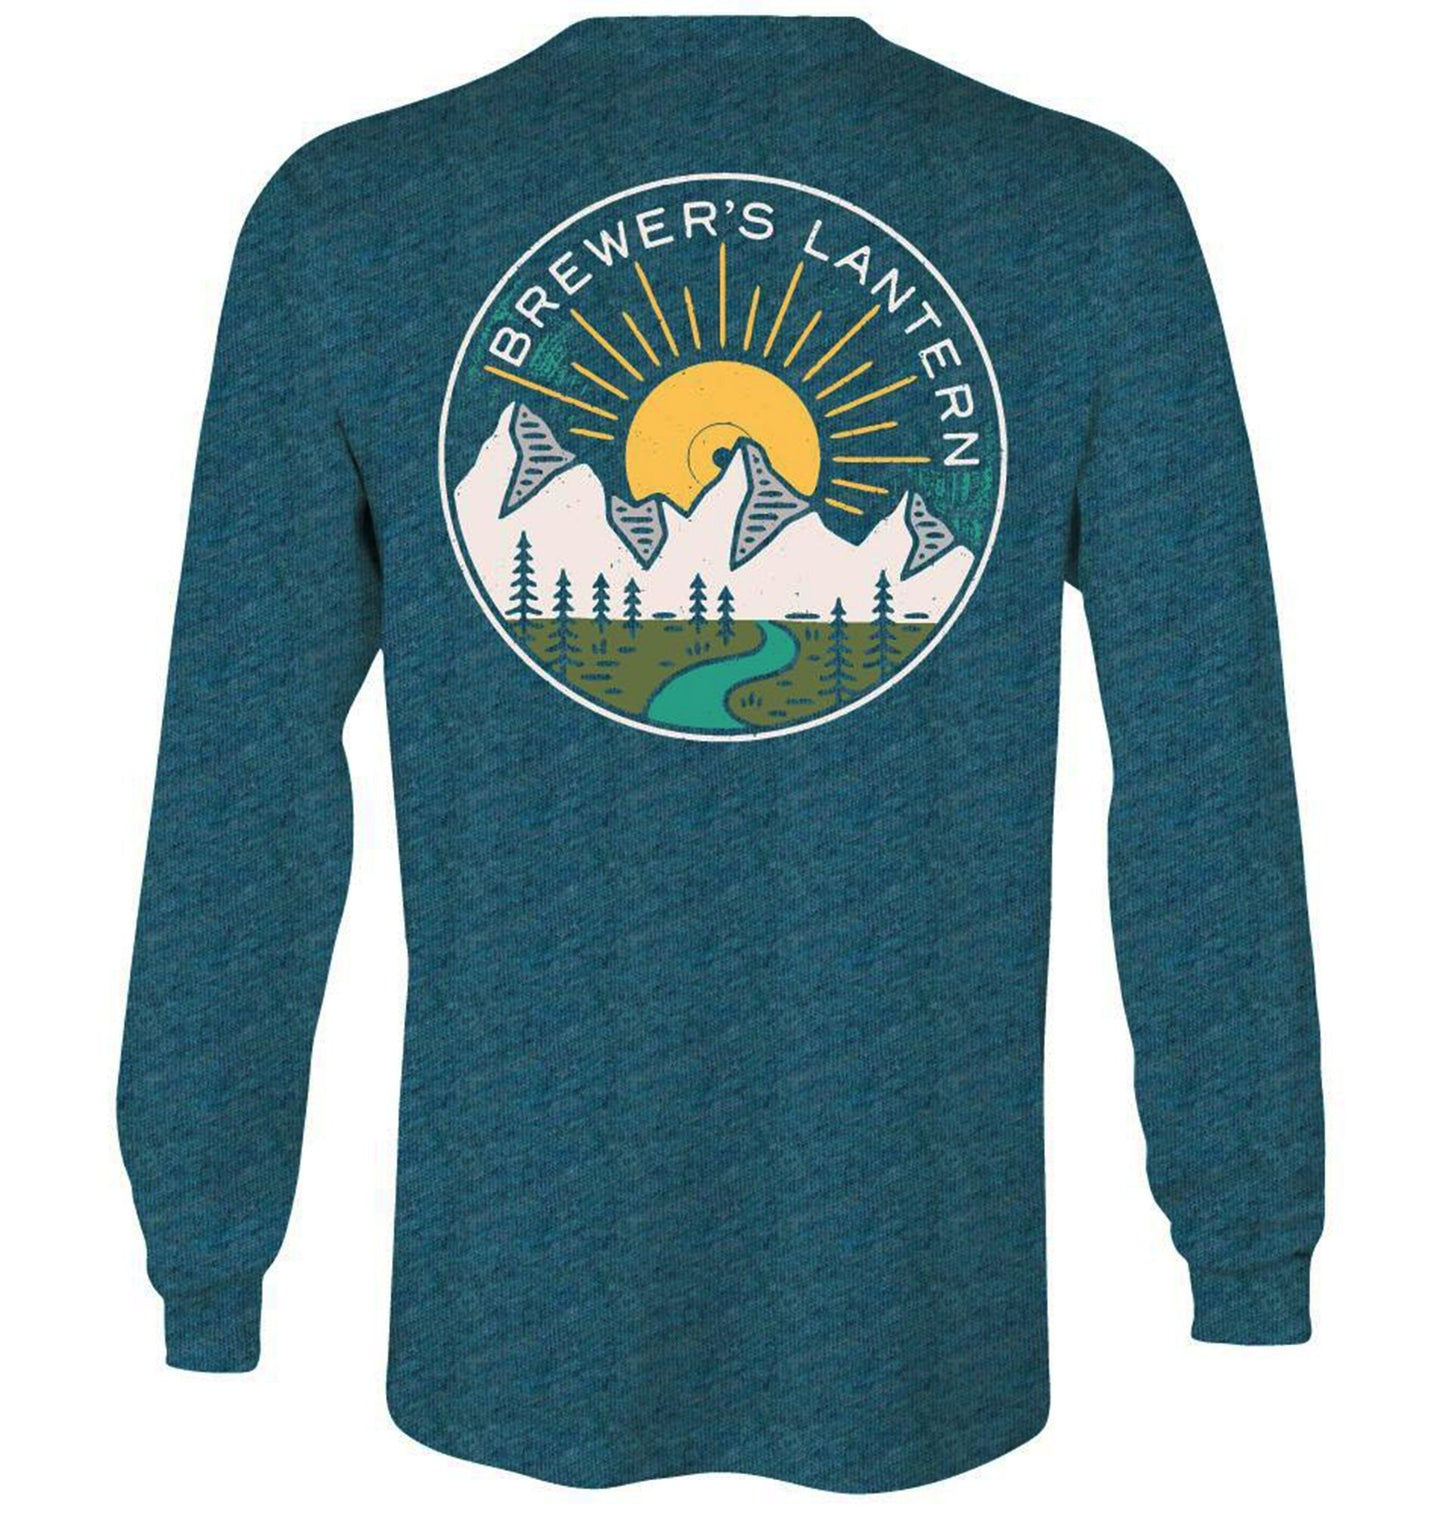 Brewer's Lantern MEN - SHIRTS - LONG SLEEVE T-SHIRTS Brewer's Lantern, Mountain Music Long Sleeve T-Shirt, Salt Lake